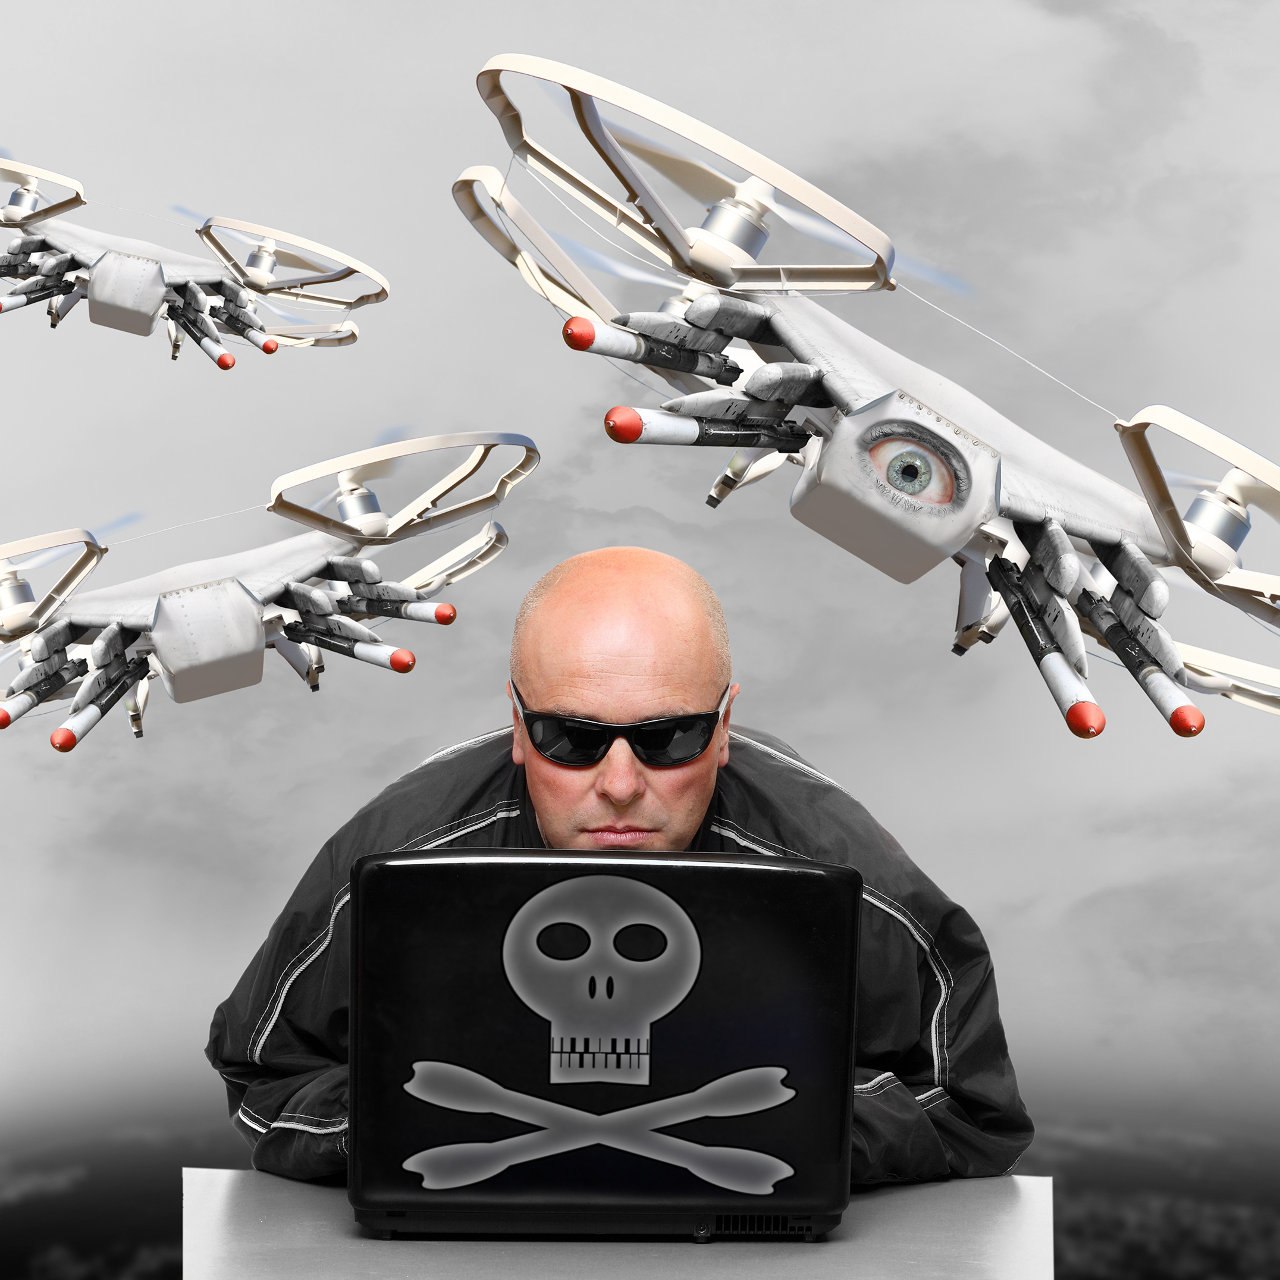 Drones armed with guns, chainsaws and vulnerabilities